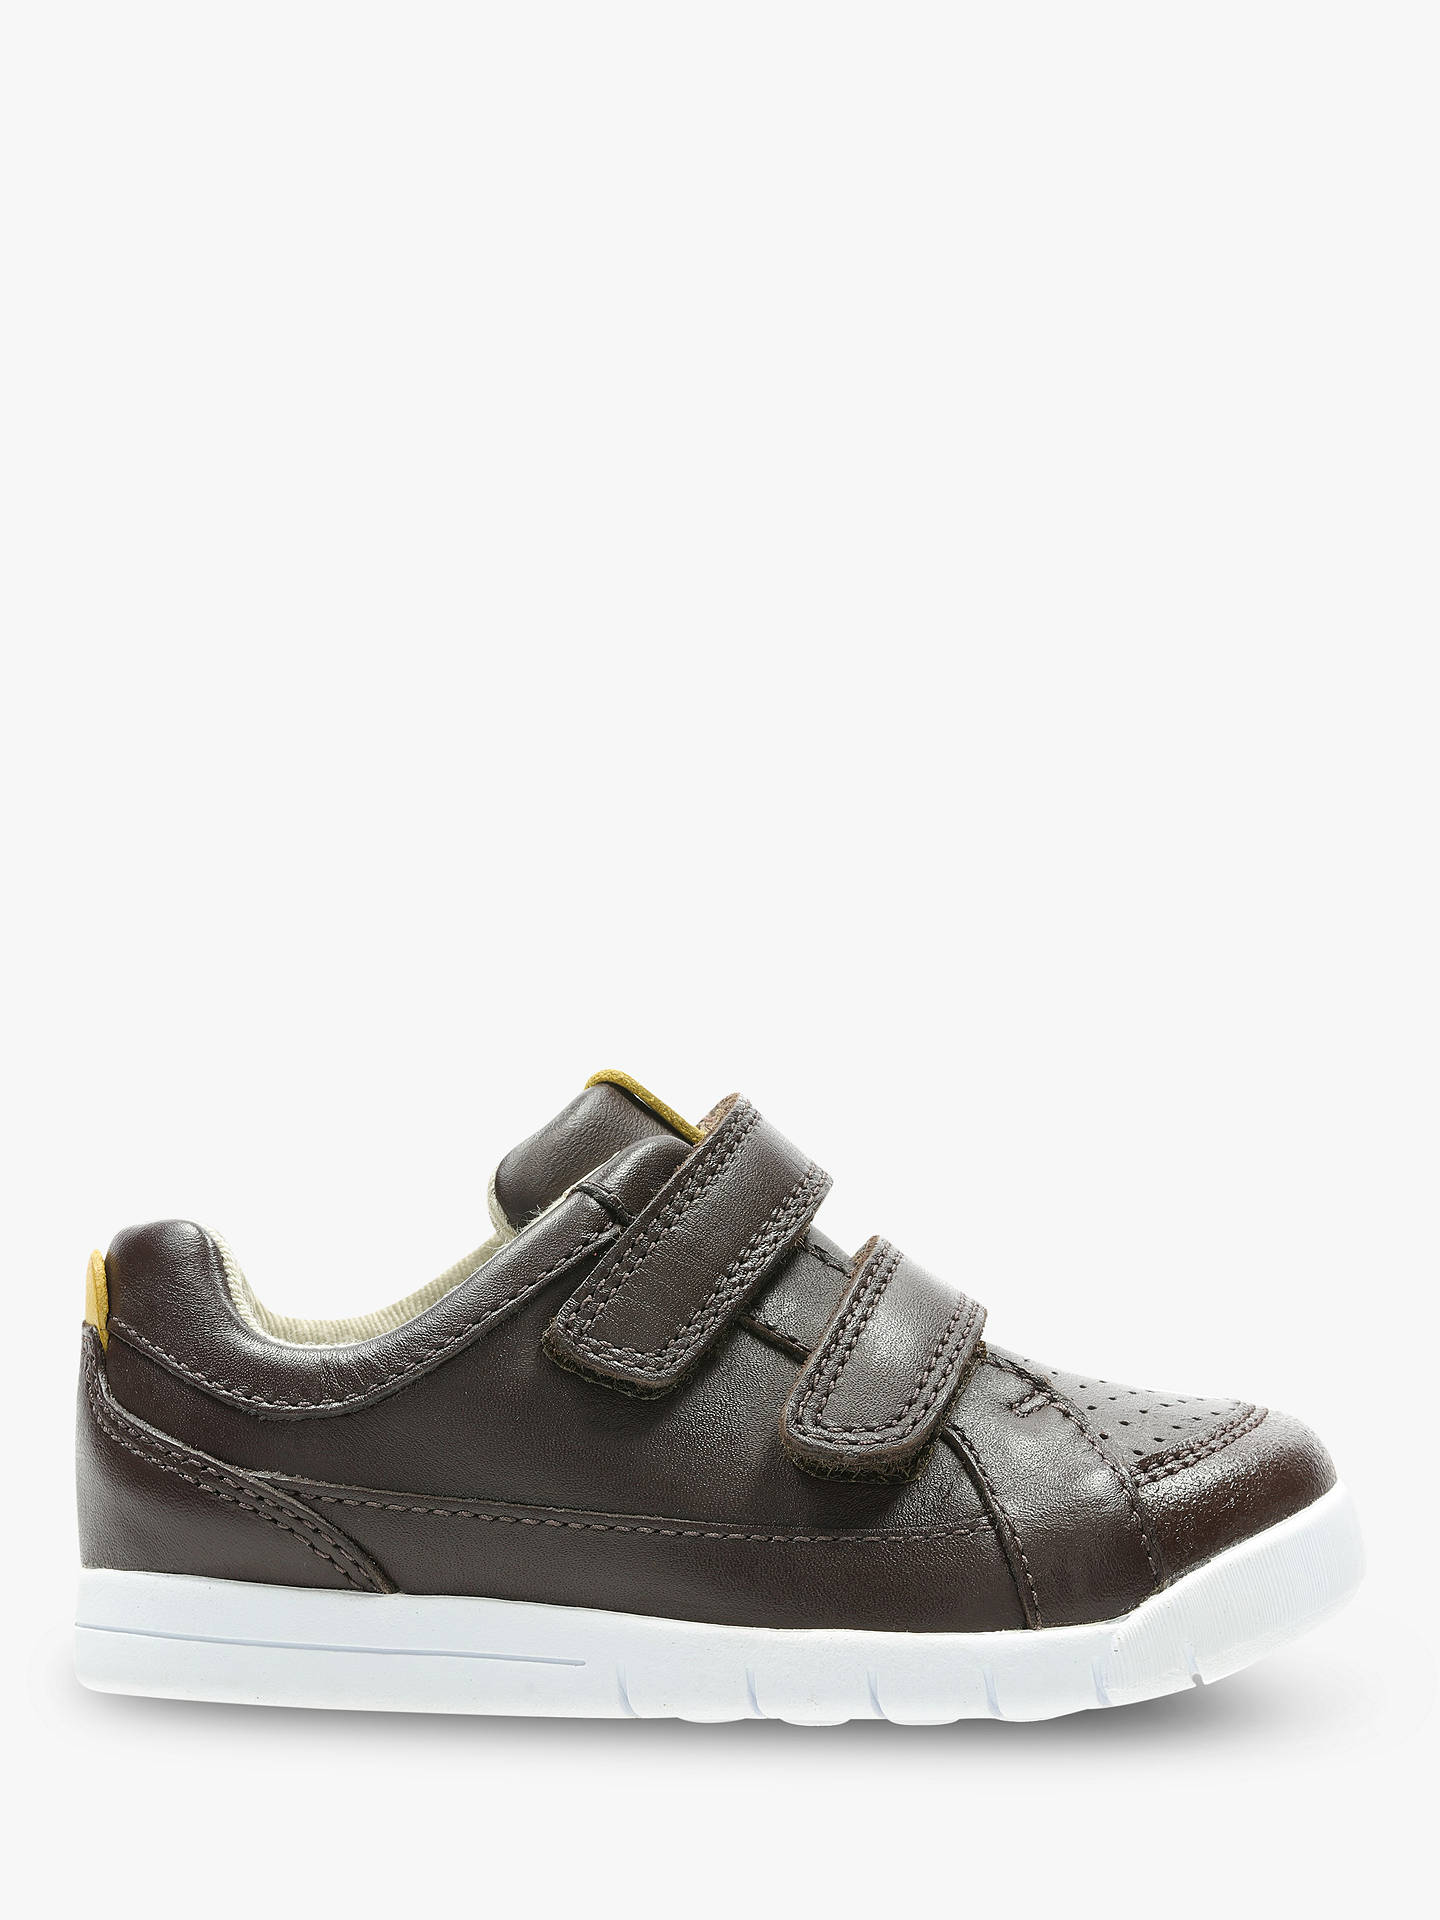 0af5d876597dc Buy Clarks Children's Emery Walk Riptape Shoes, Brown, 5H Jnr Online at  johnlewis.